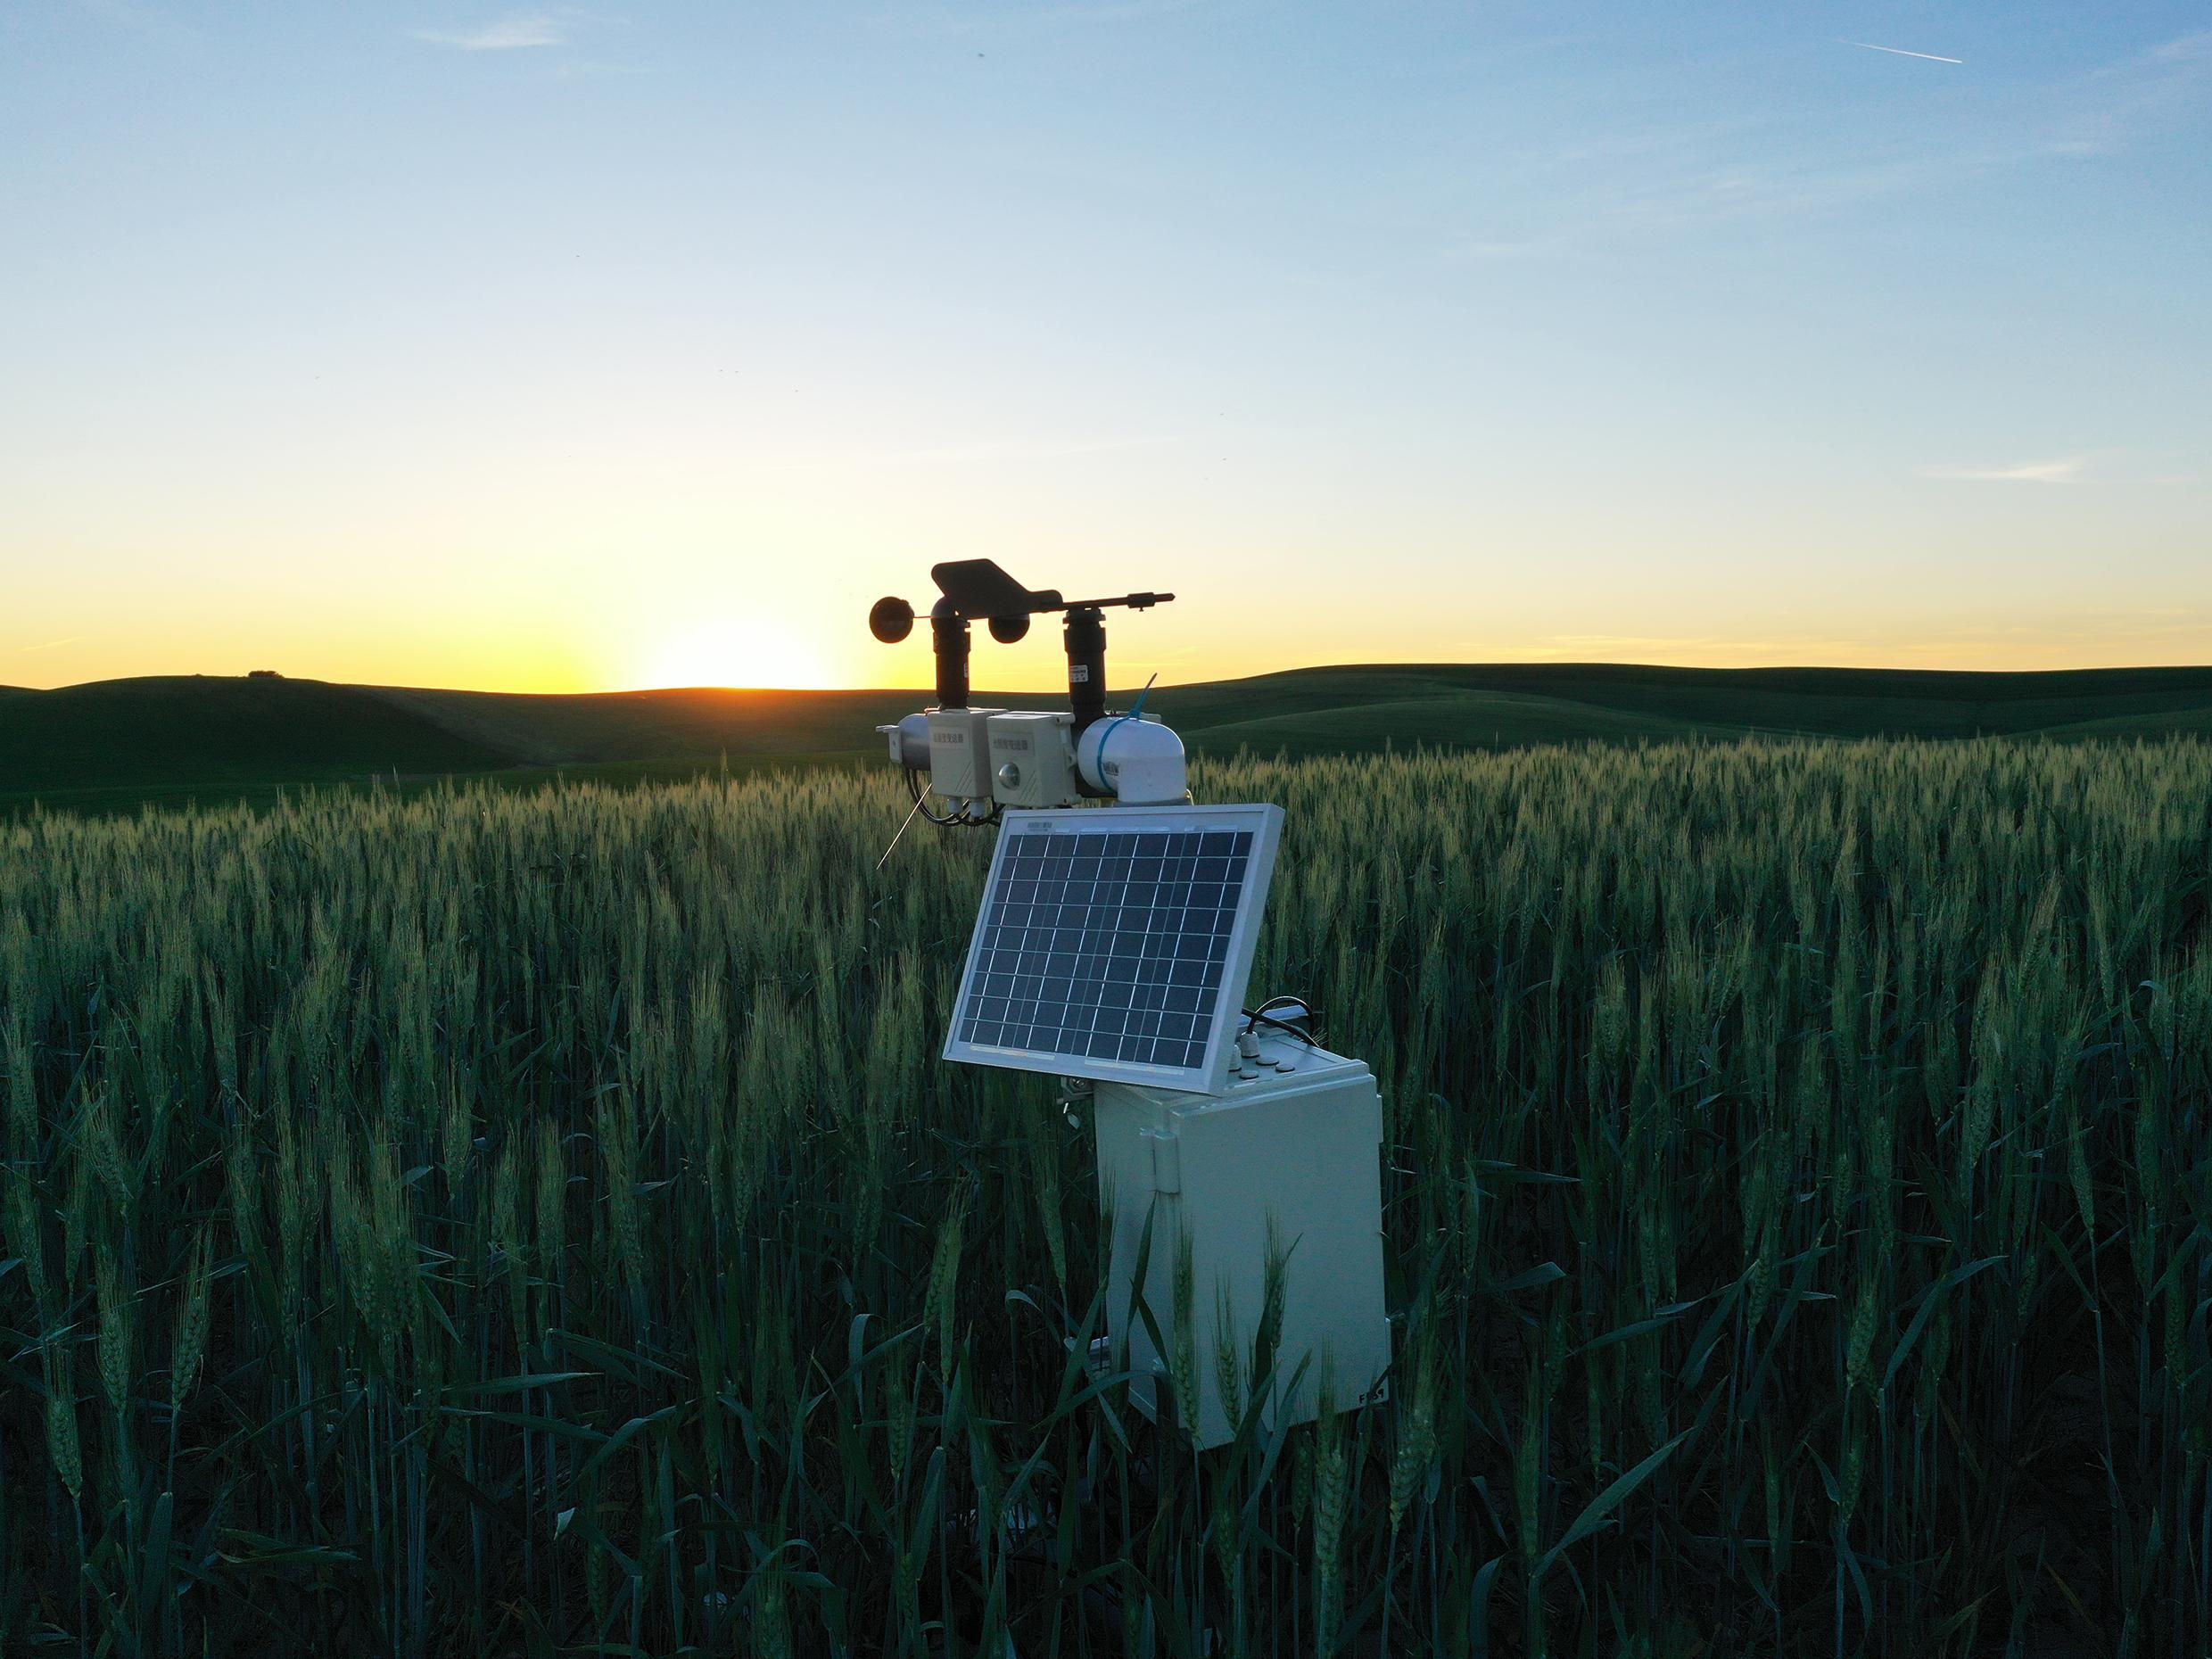 A sensor that collects the local climate data that the DeepMC framework uses